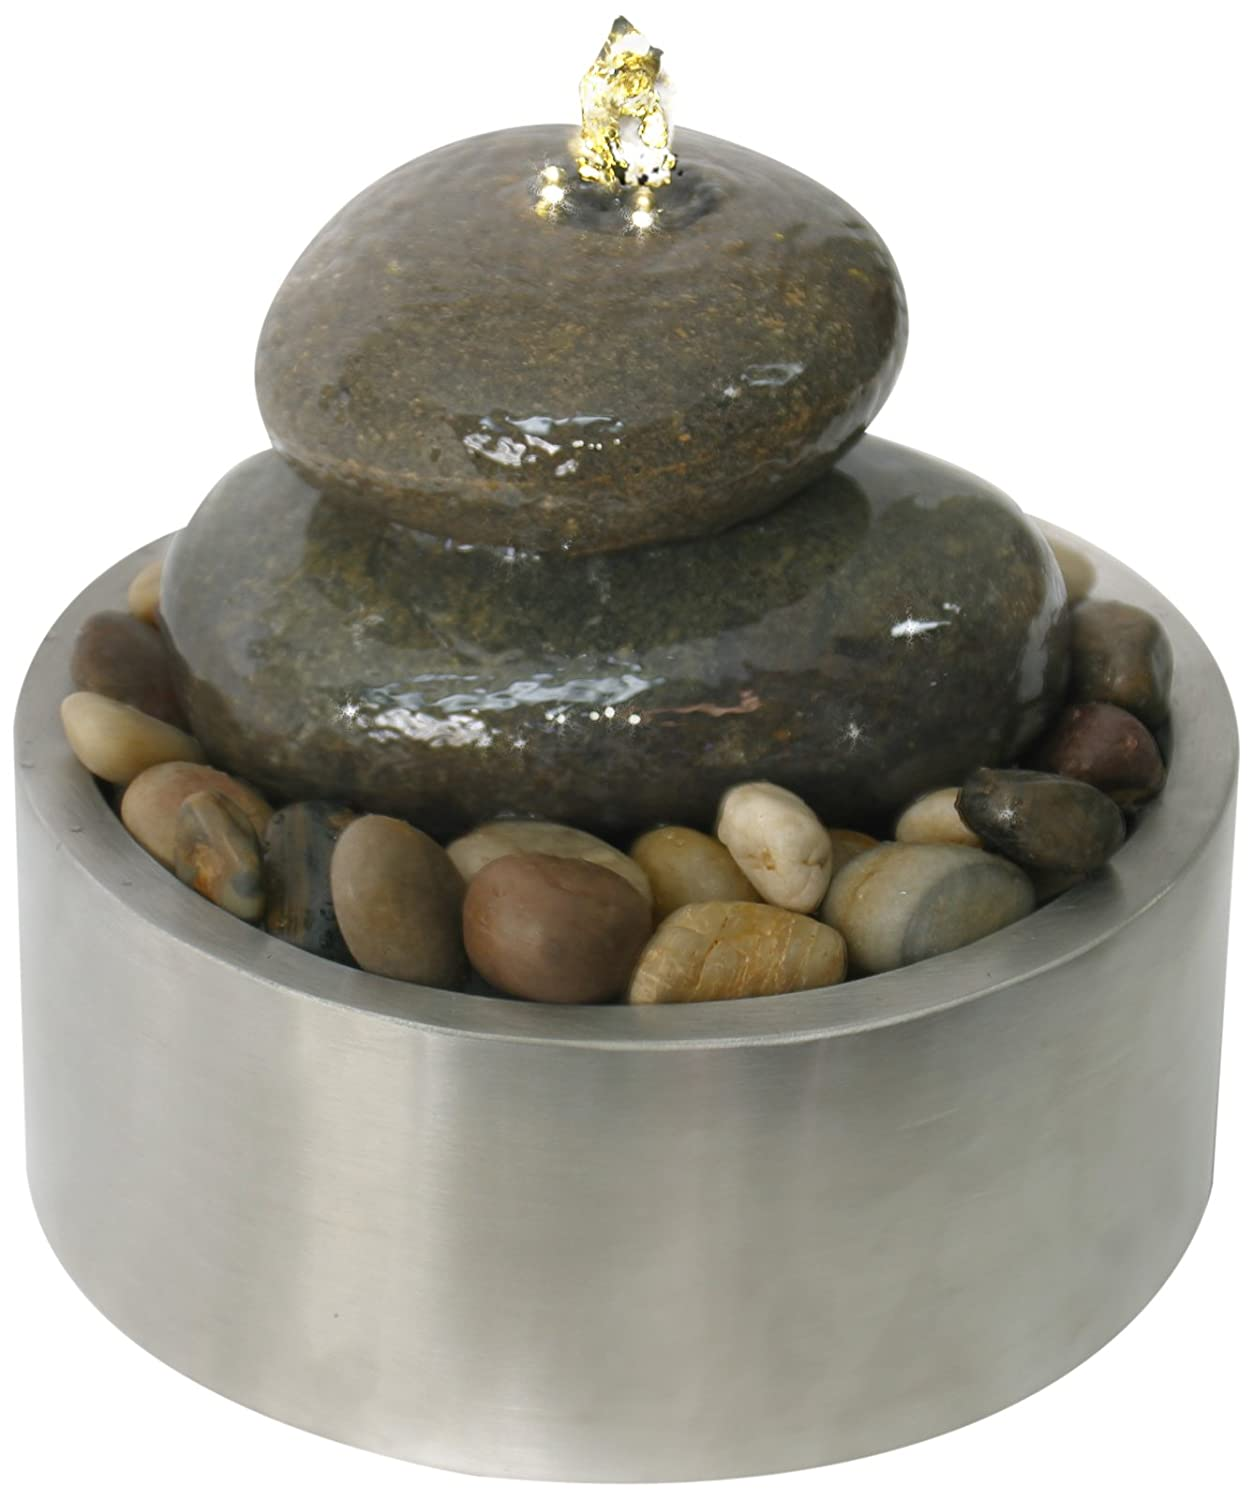 Roll over image to zoom in Algreen Algreen Illuminated Relaxation Fountain with Authentic River Rocks and Stainless Steel Base